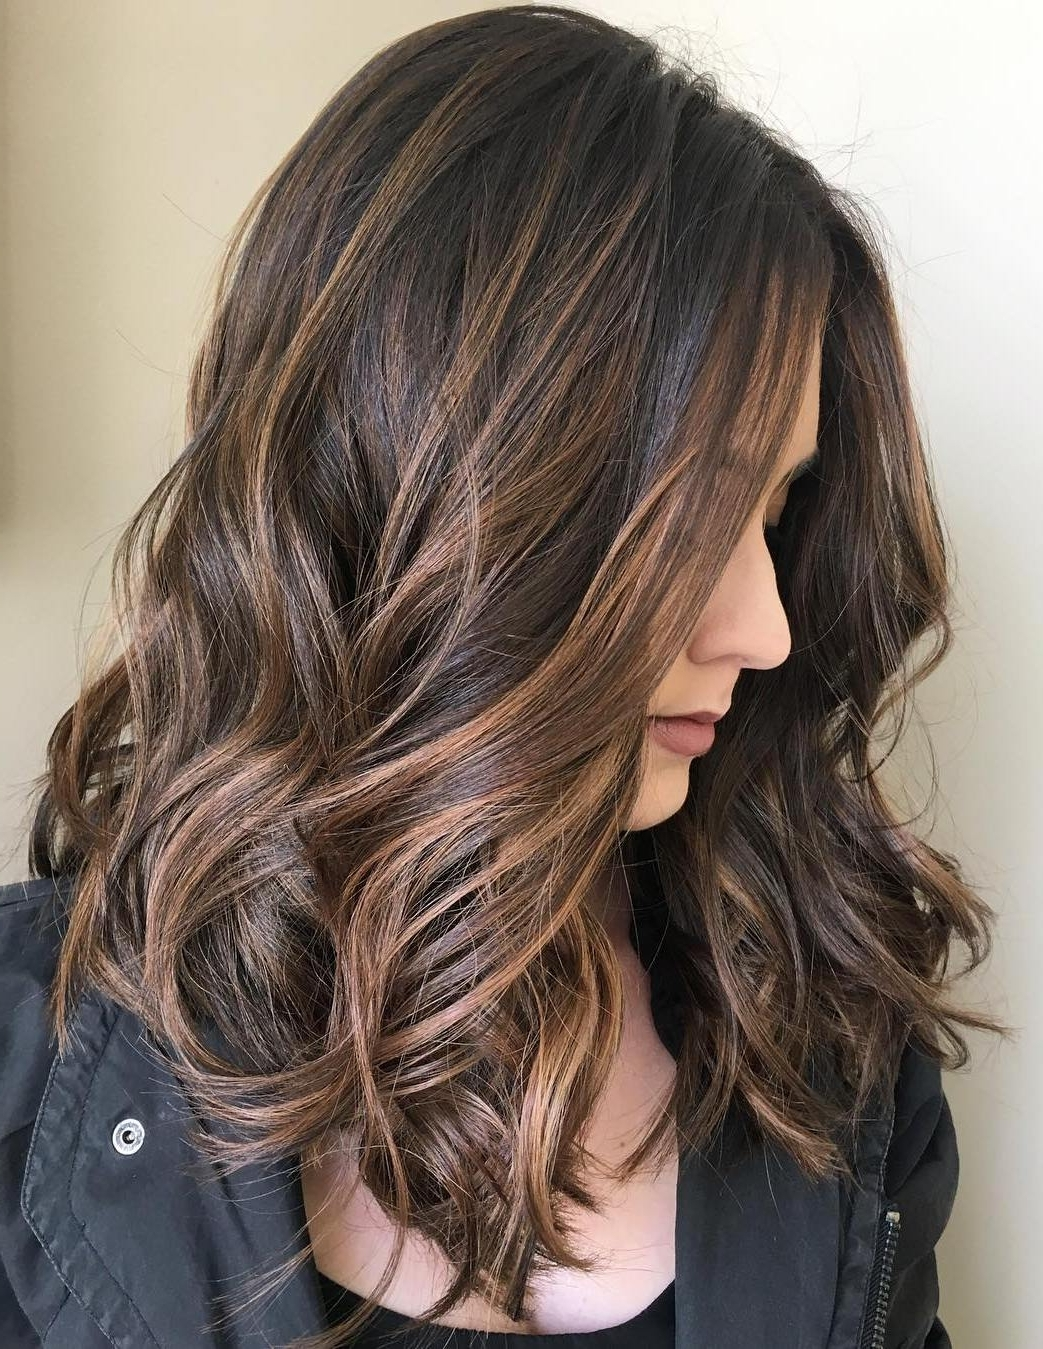 Current Piece Y Pixie Haircuts With Subtle Balayage Regarding 70 Balayage Hair Color Ideas With Blonde, Brown And Caramel Highlights (Gallery 16 of 20)